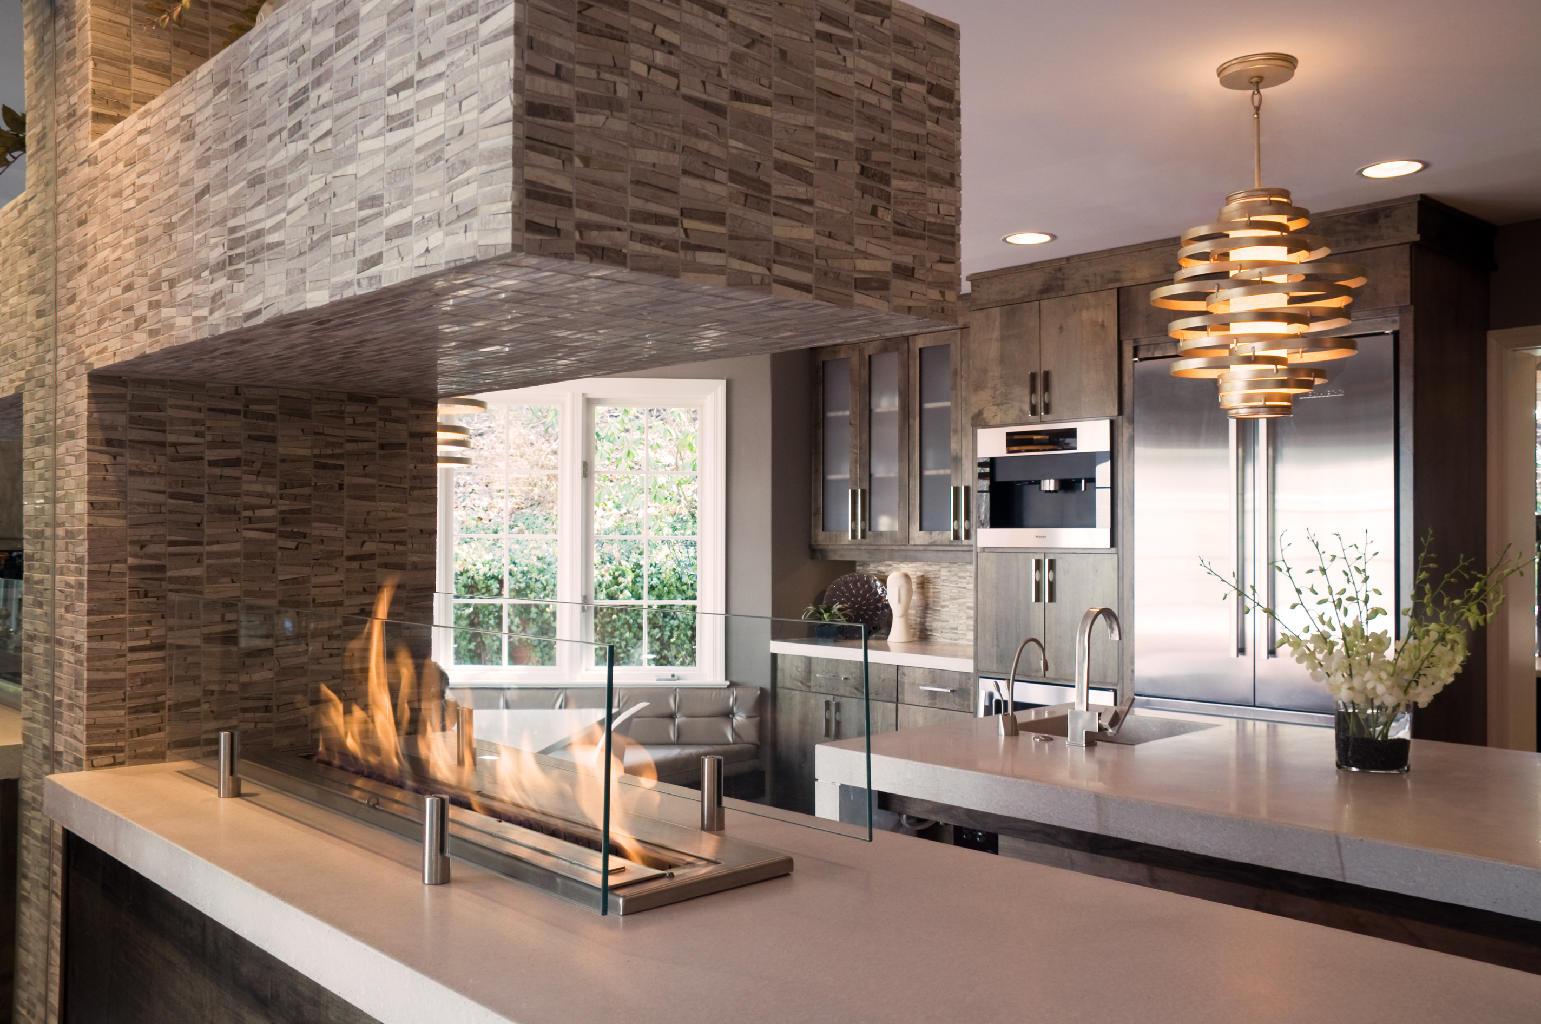 6 beautiful kitchens with fire elements – kitchen studio of naples